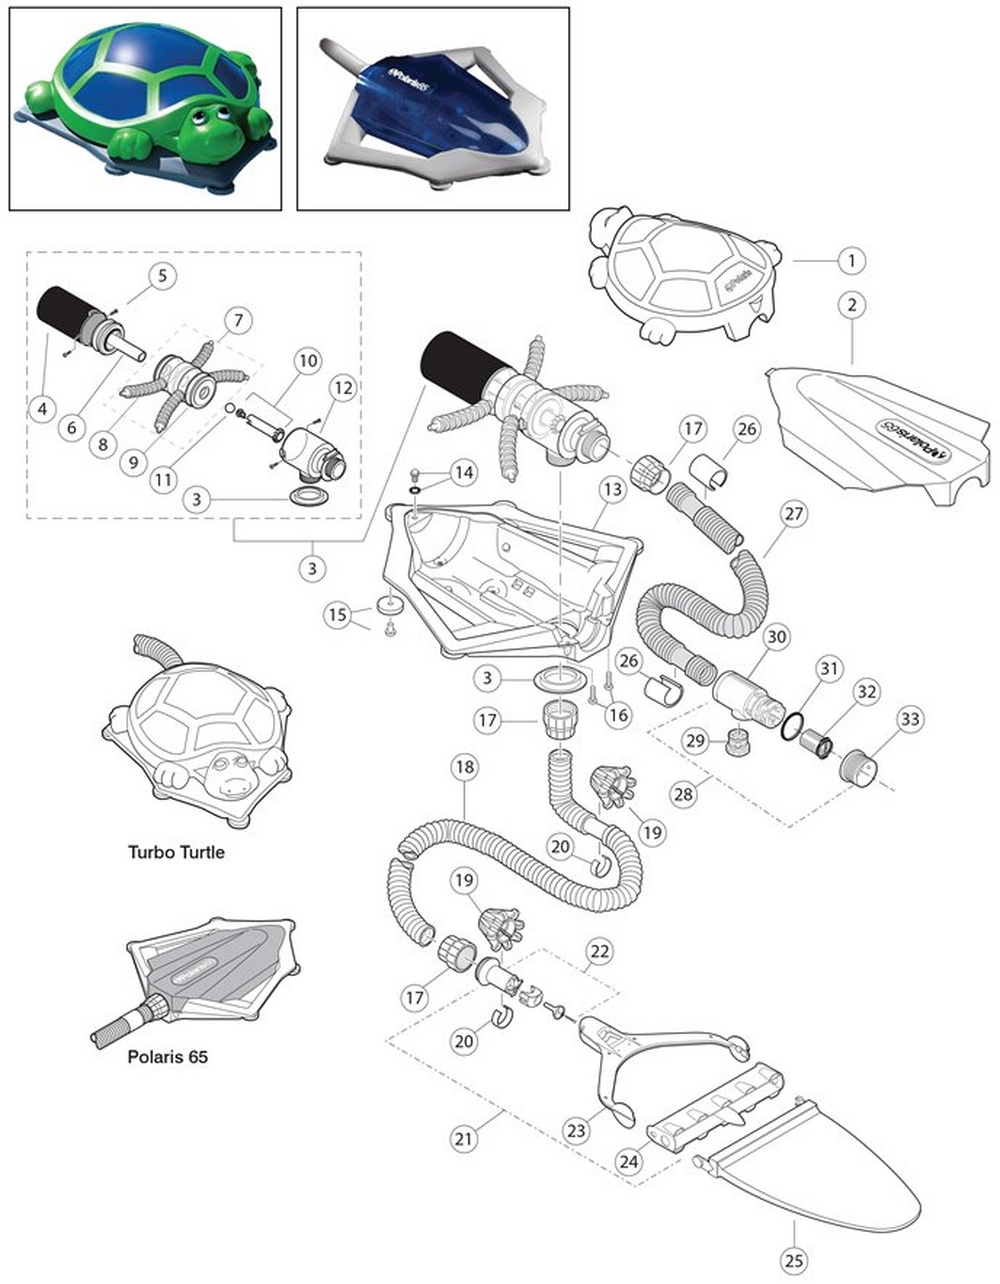 65 & Turbo Turtle Cleaner Parts image